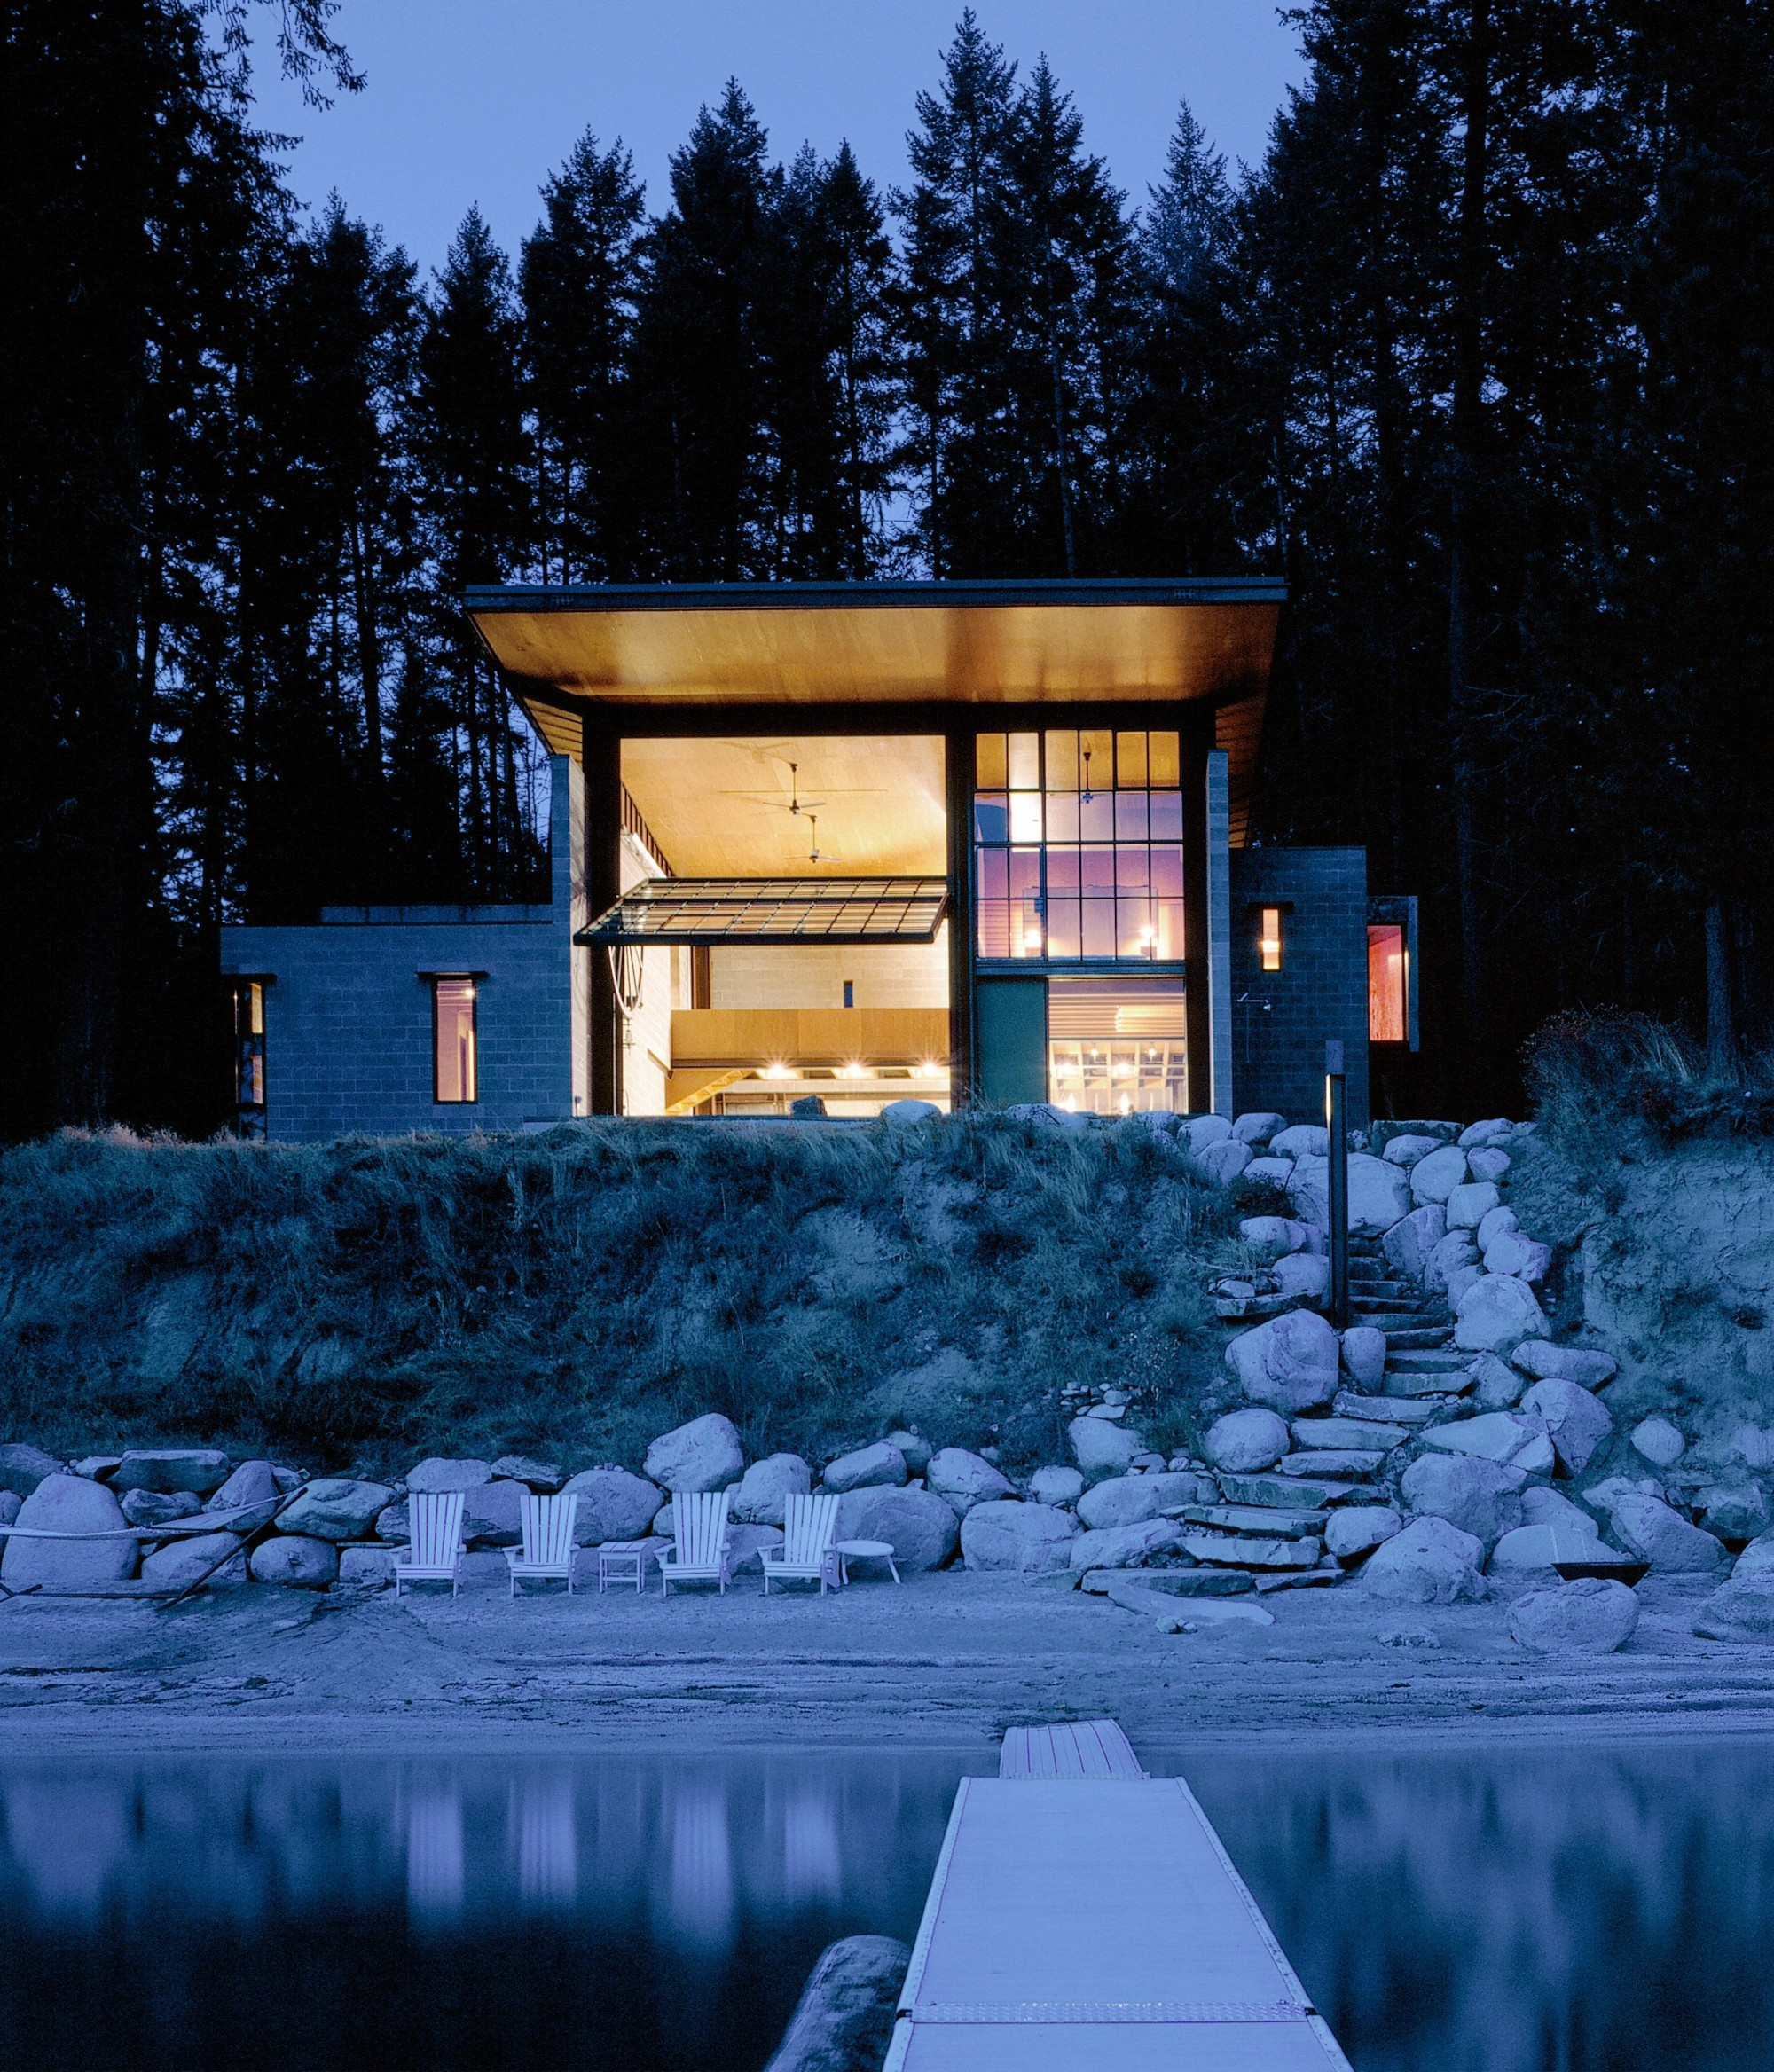 Chicken_Point_Cabin_olson-kundig-architecture-irene-van-guin-blog-interior-5